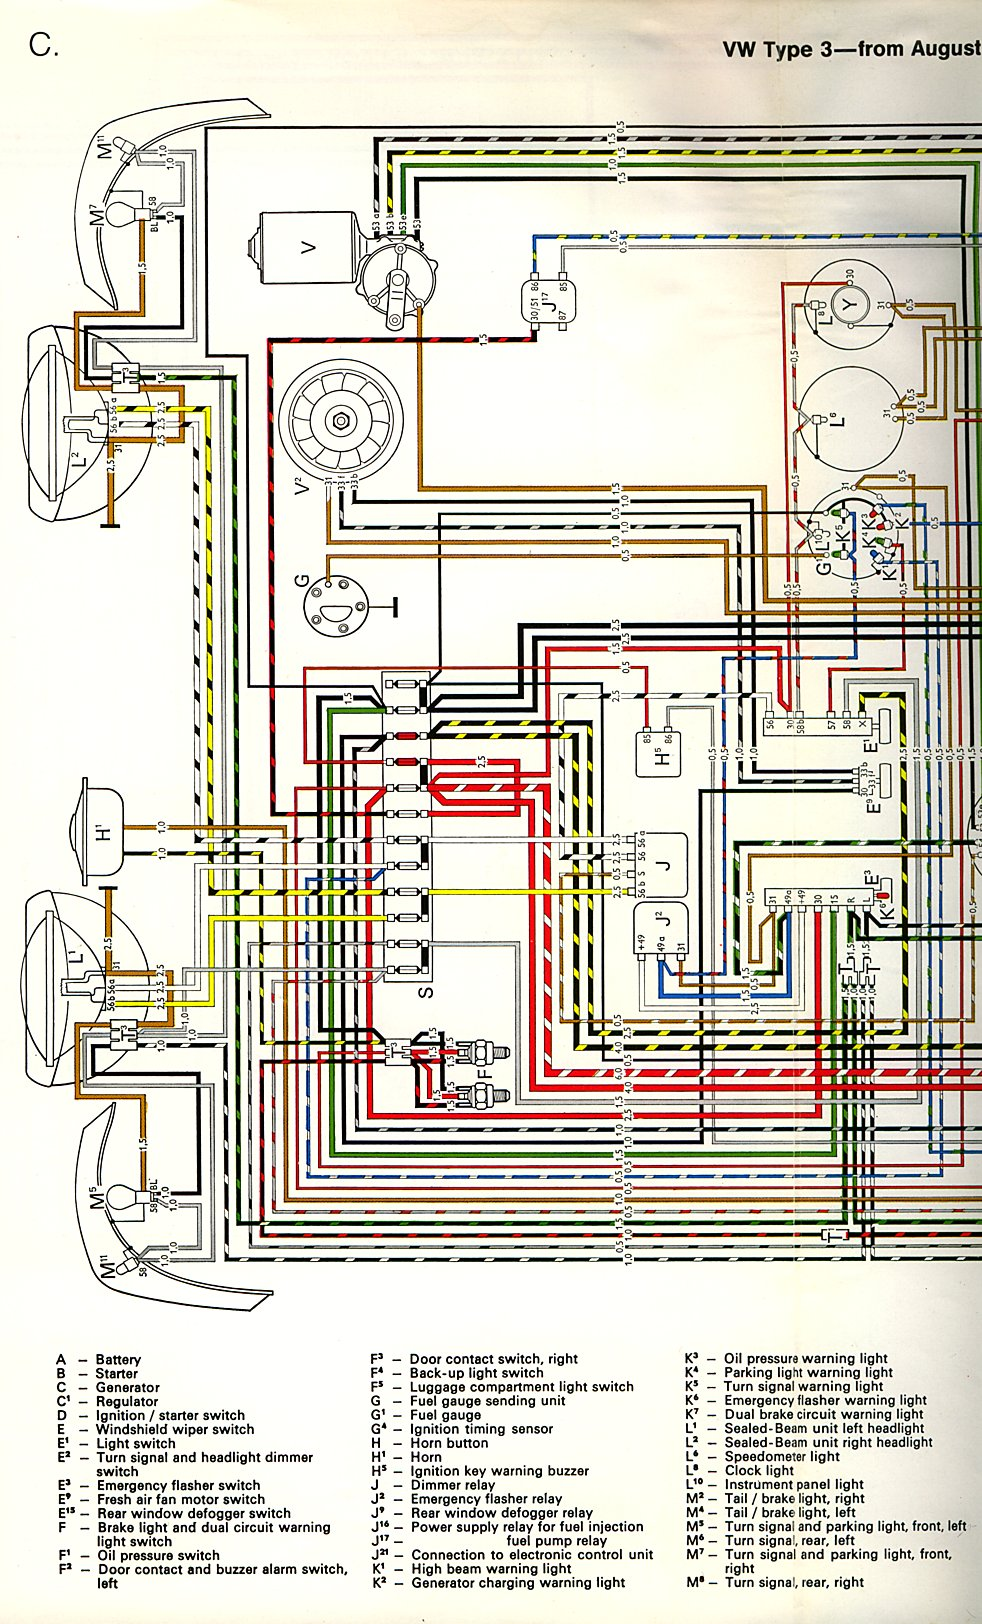 hight resolution of thesamba com type 3 wiring diagrams 1968 vw dash wiring vw type 3 wiring diagram